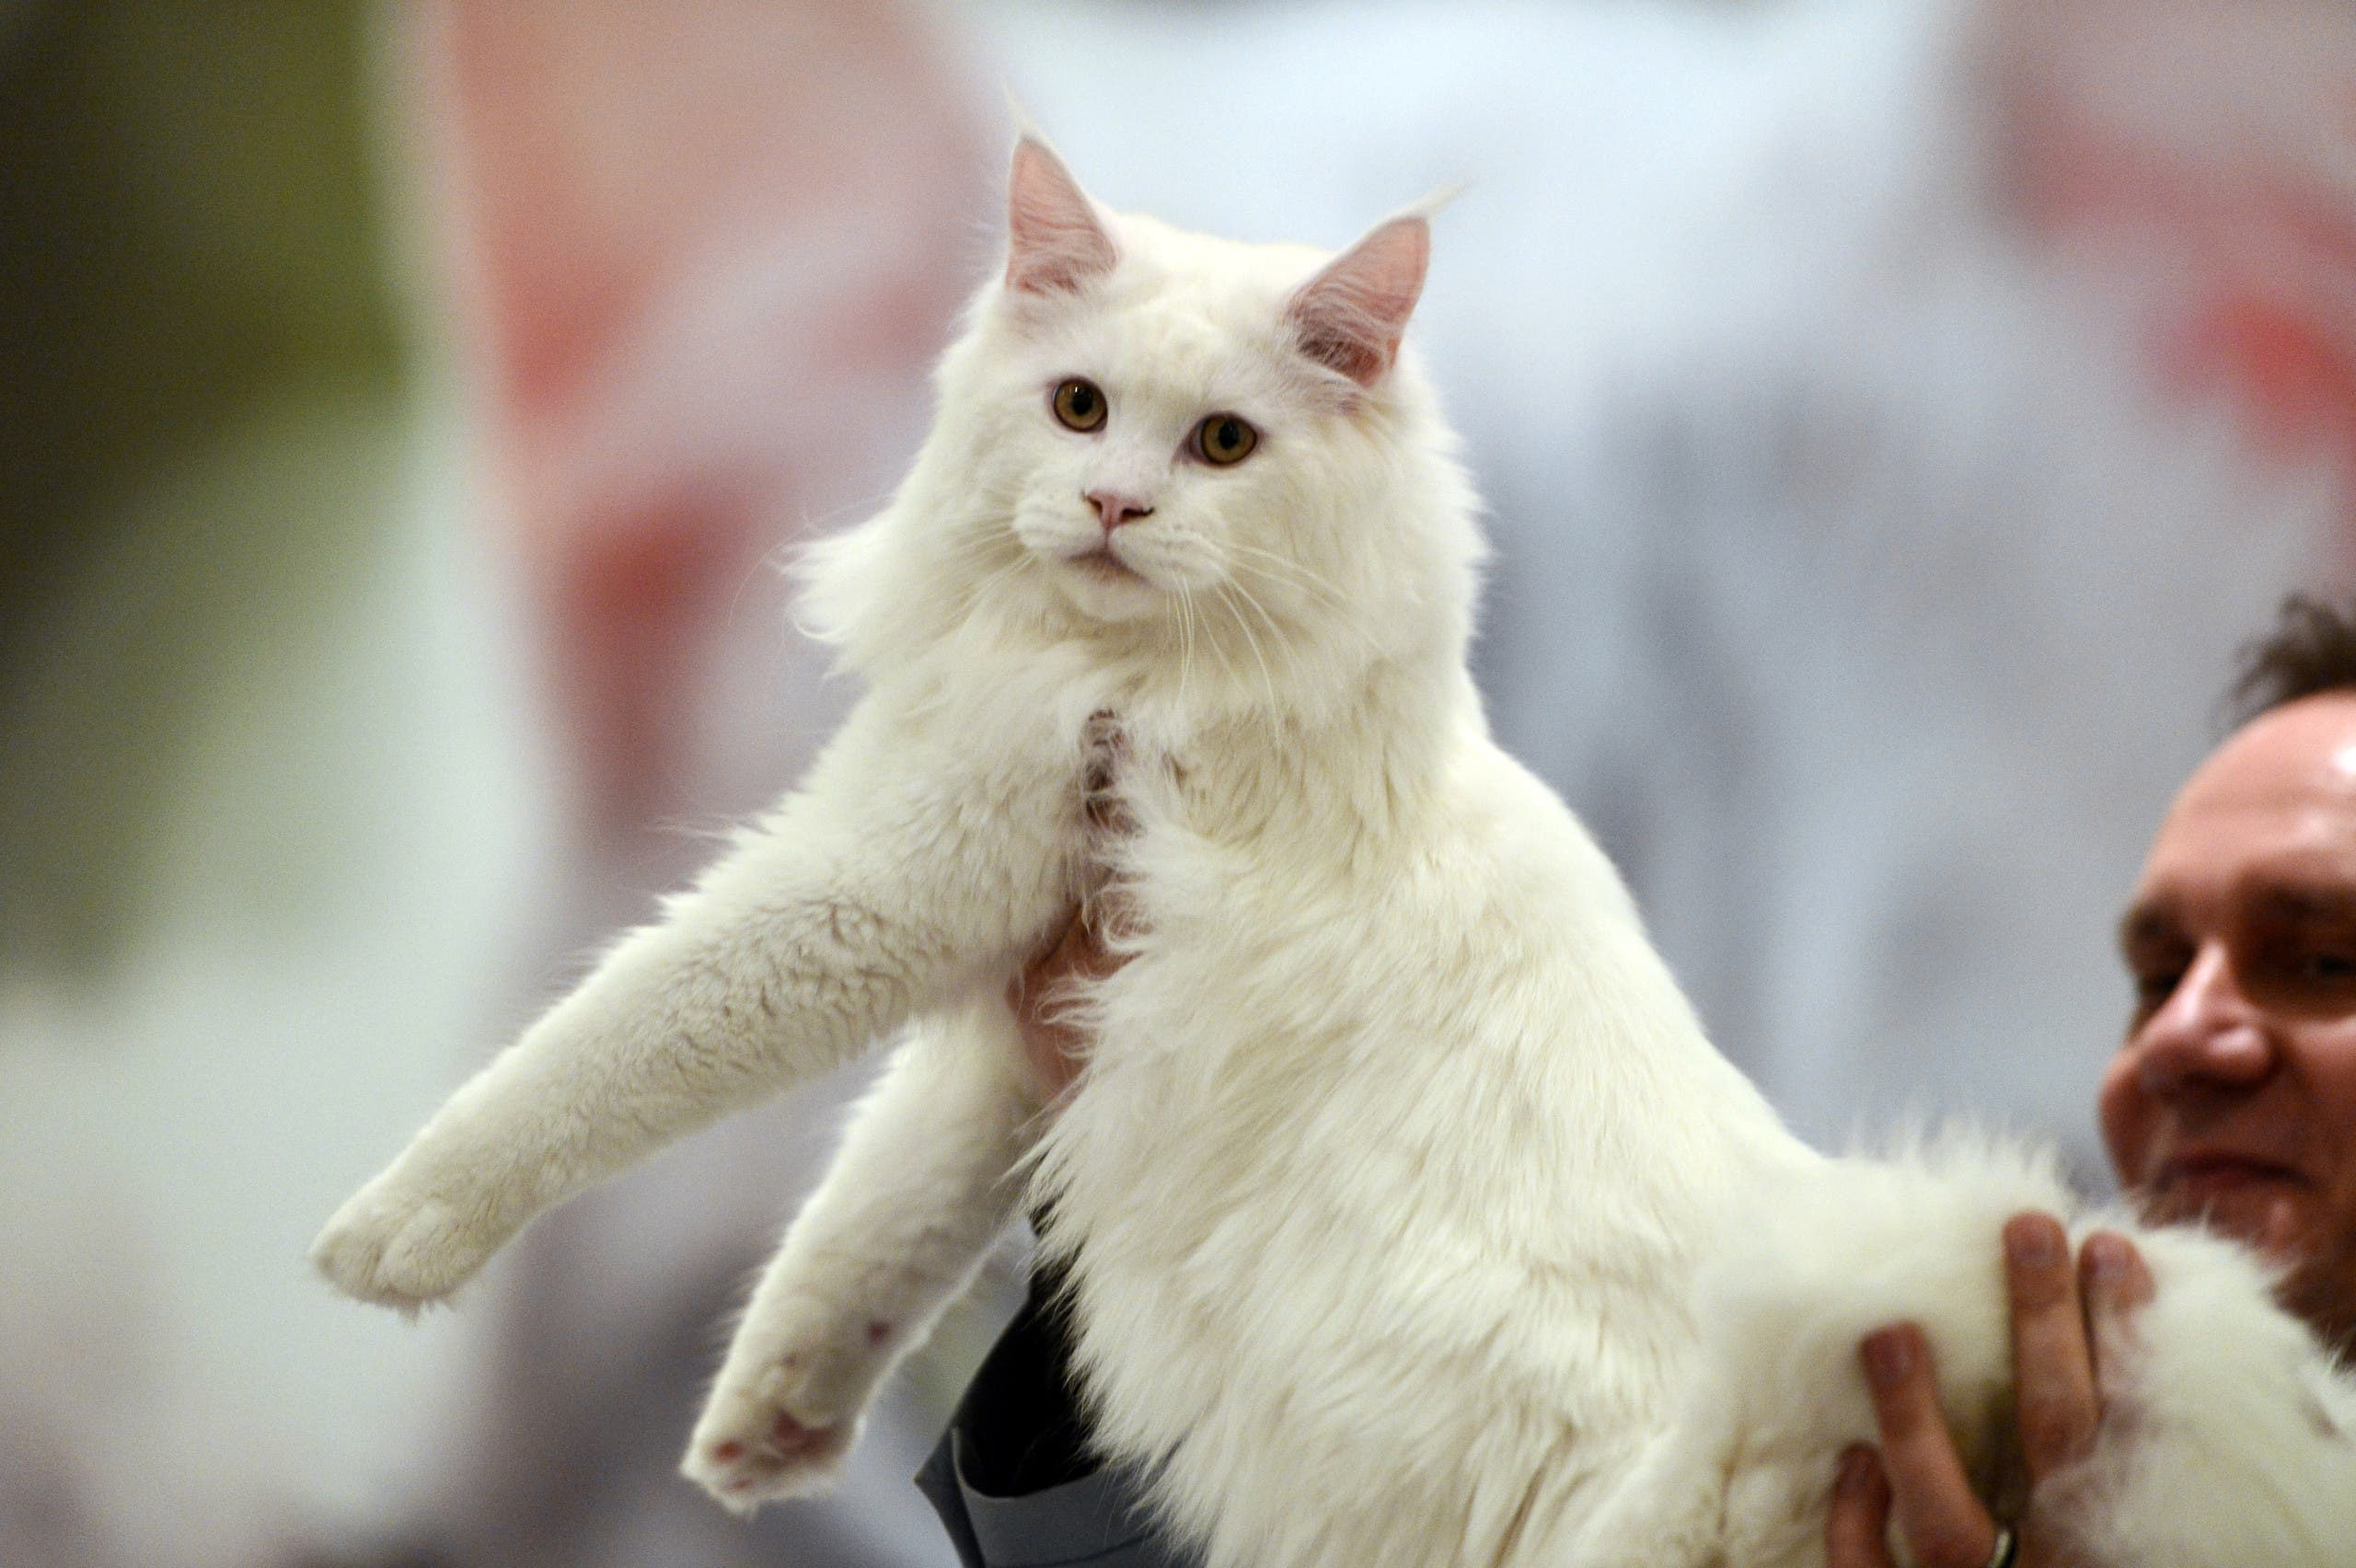 A ragamuffin cat is held by a jury member at the World Cat show in Athens on March 29, 2015. (AFP)